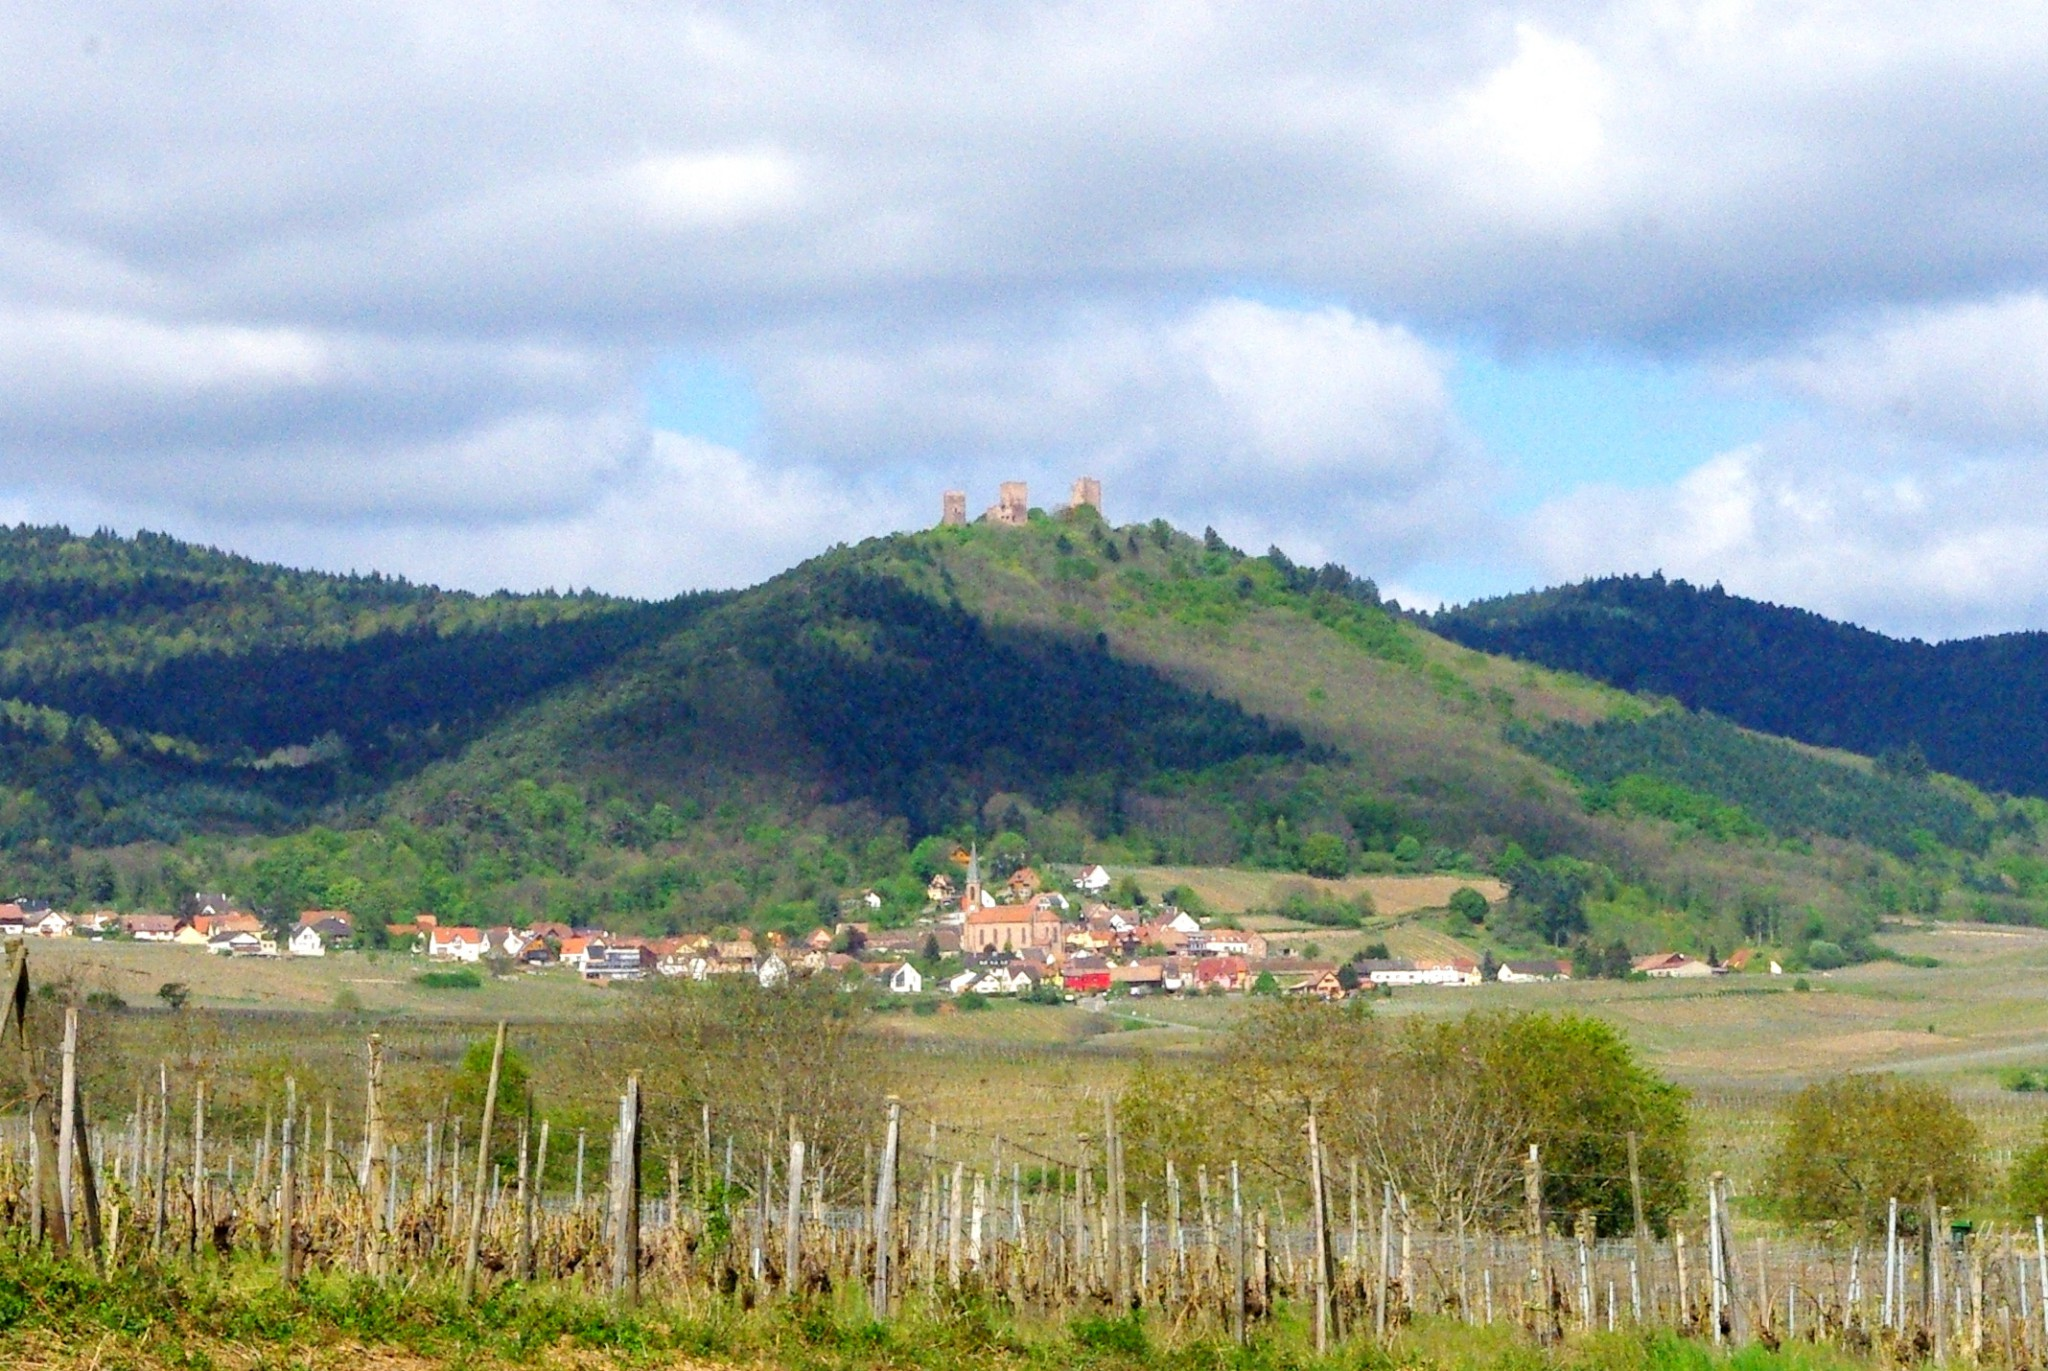 The three castles of Eguisheim seen from the vineyards © French Moments